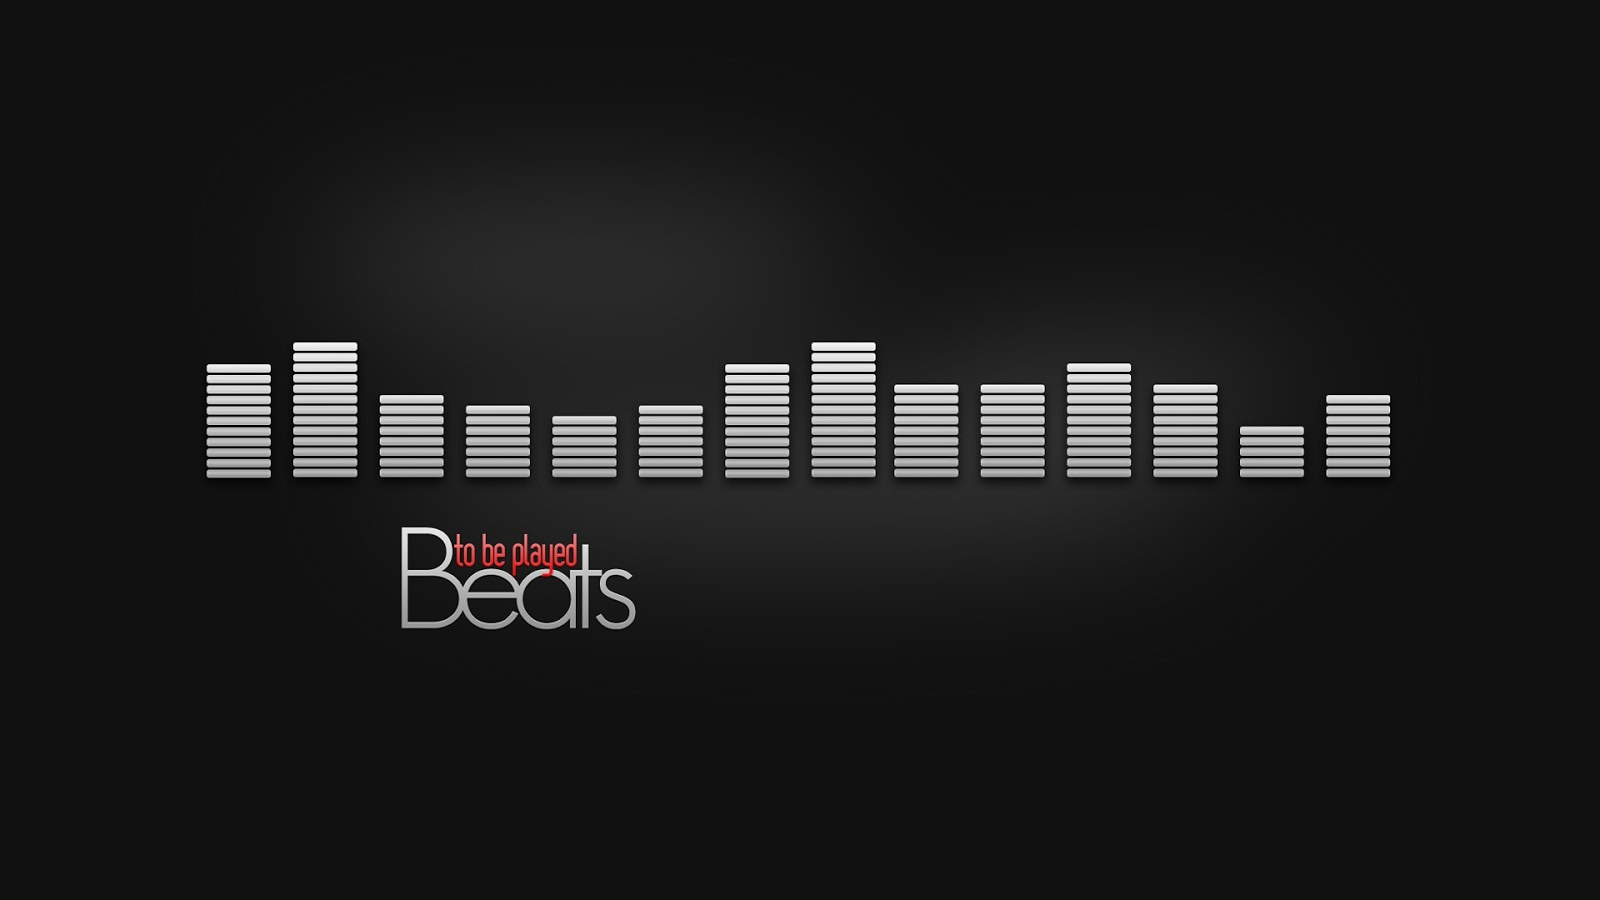 Beats to be Played